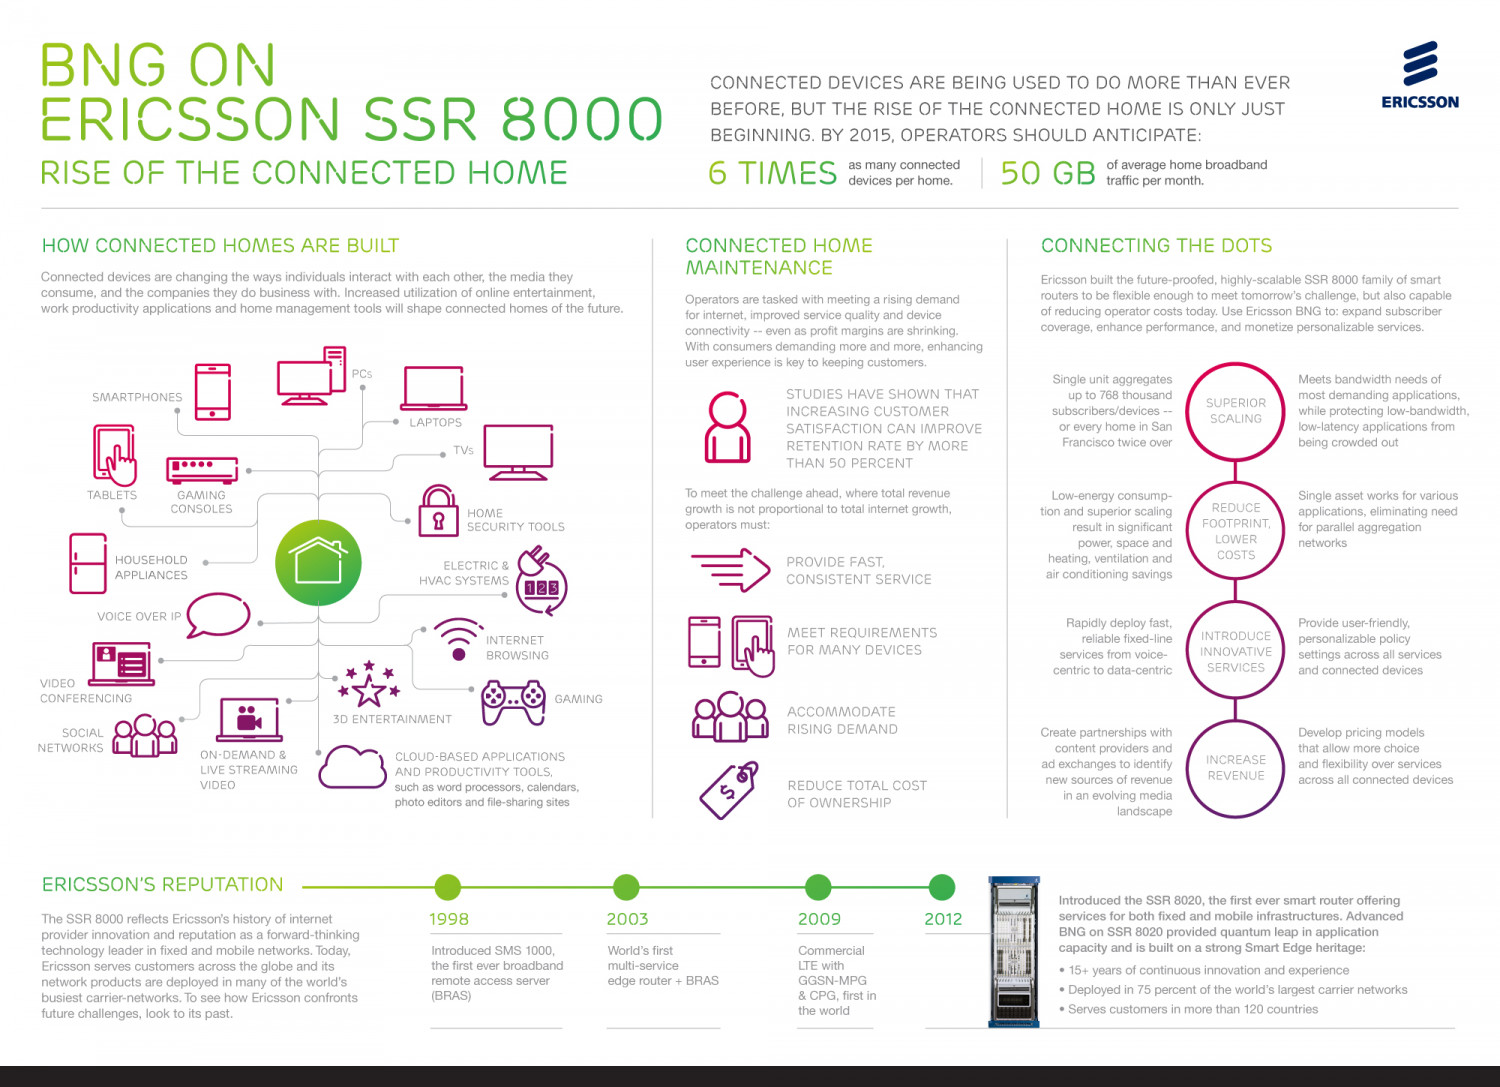 BNG on Ericsson SSR 8000 Infographic